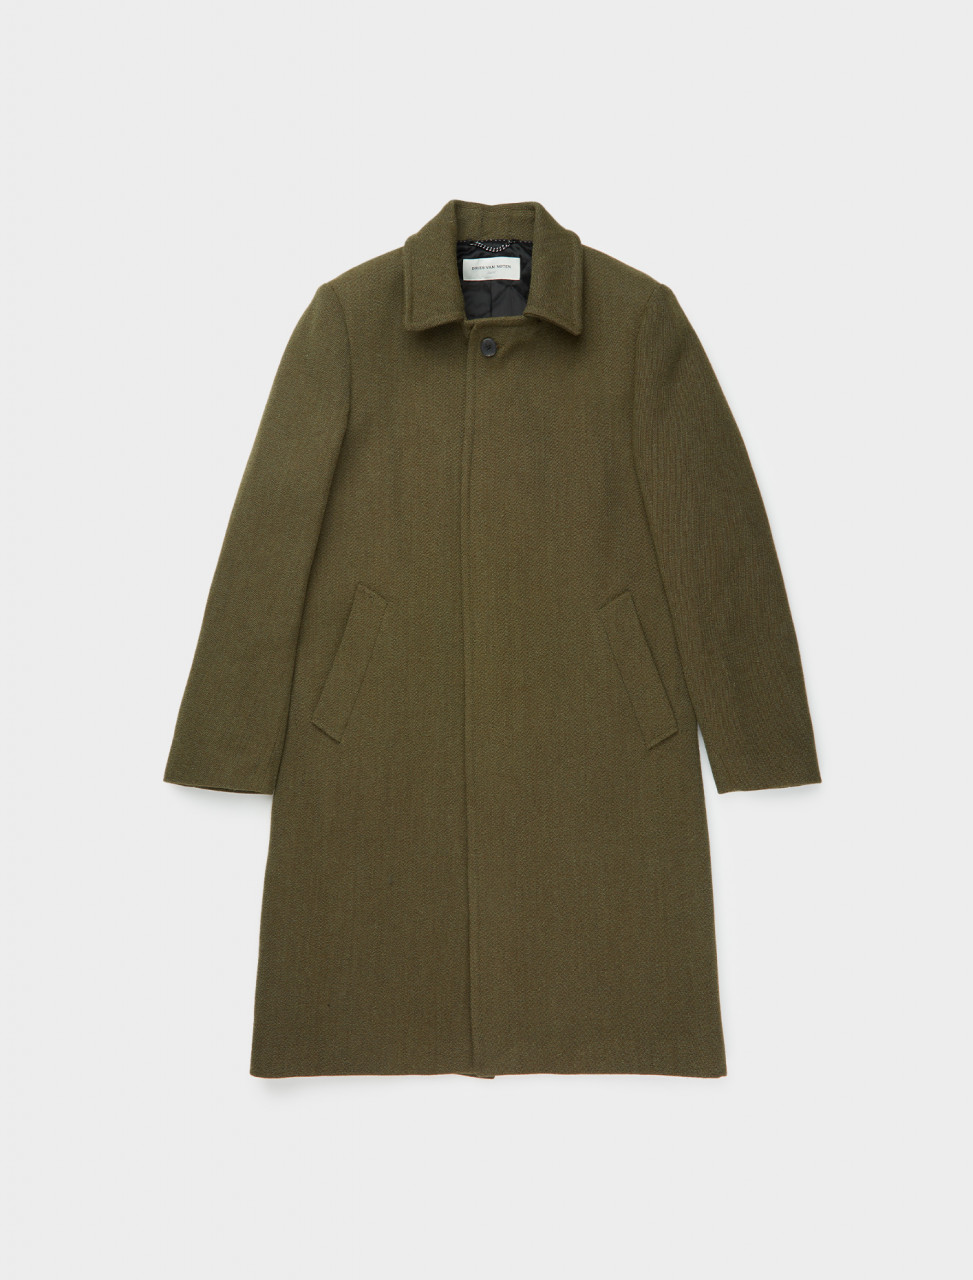 260-202-20225-1190-606 DRIES VAN NOTEN ROBURN COAT KHAKI